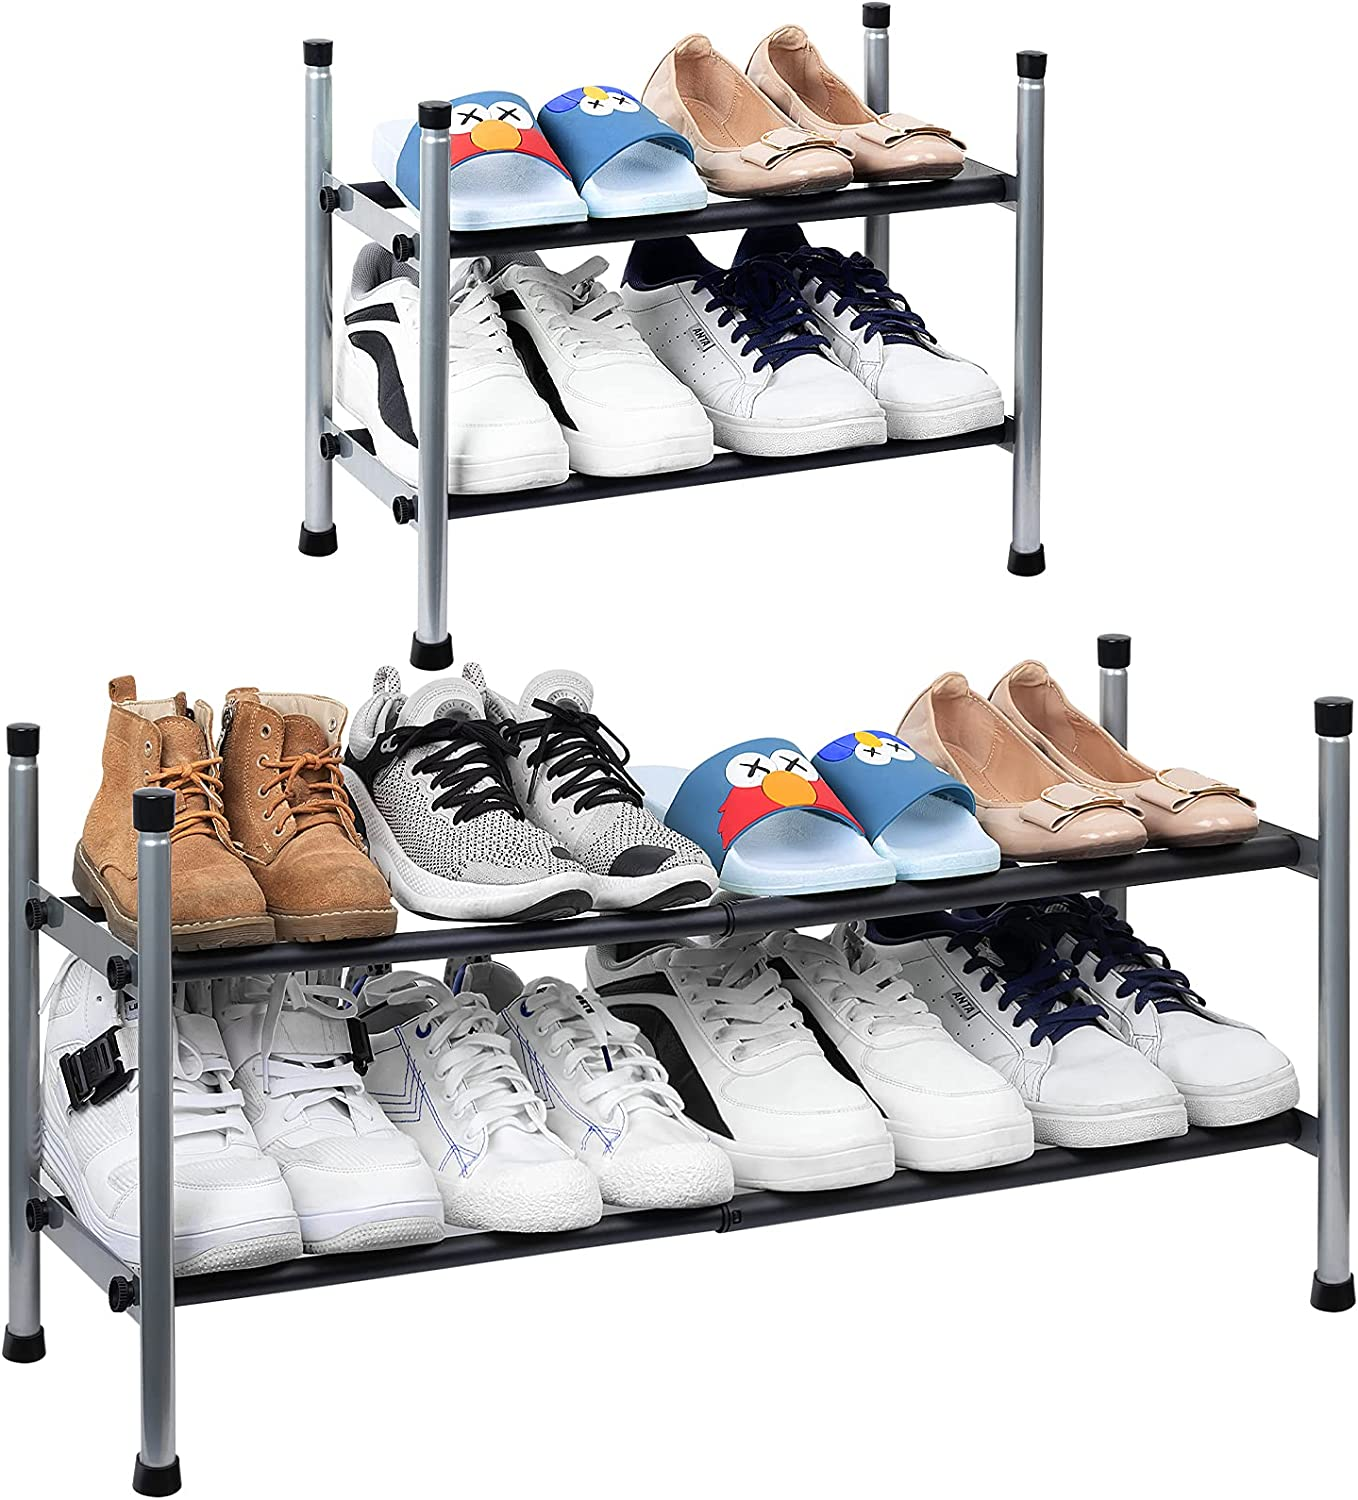 2-Tier Expandable Shoe Rack, Stackable and Adjustable Shoes Organizer Storage Shelf, Sturdy and Durable Metal Structure Free Standing Shoe Rack for Closet Entryway Doorway